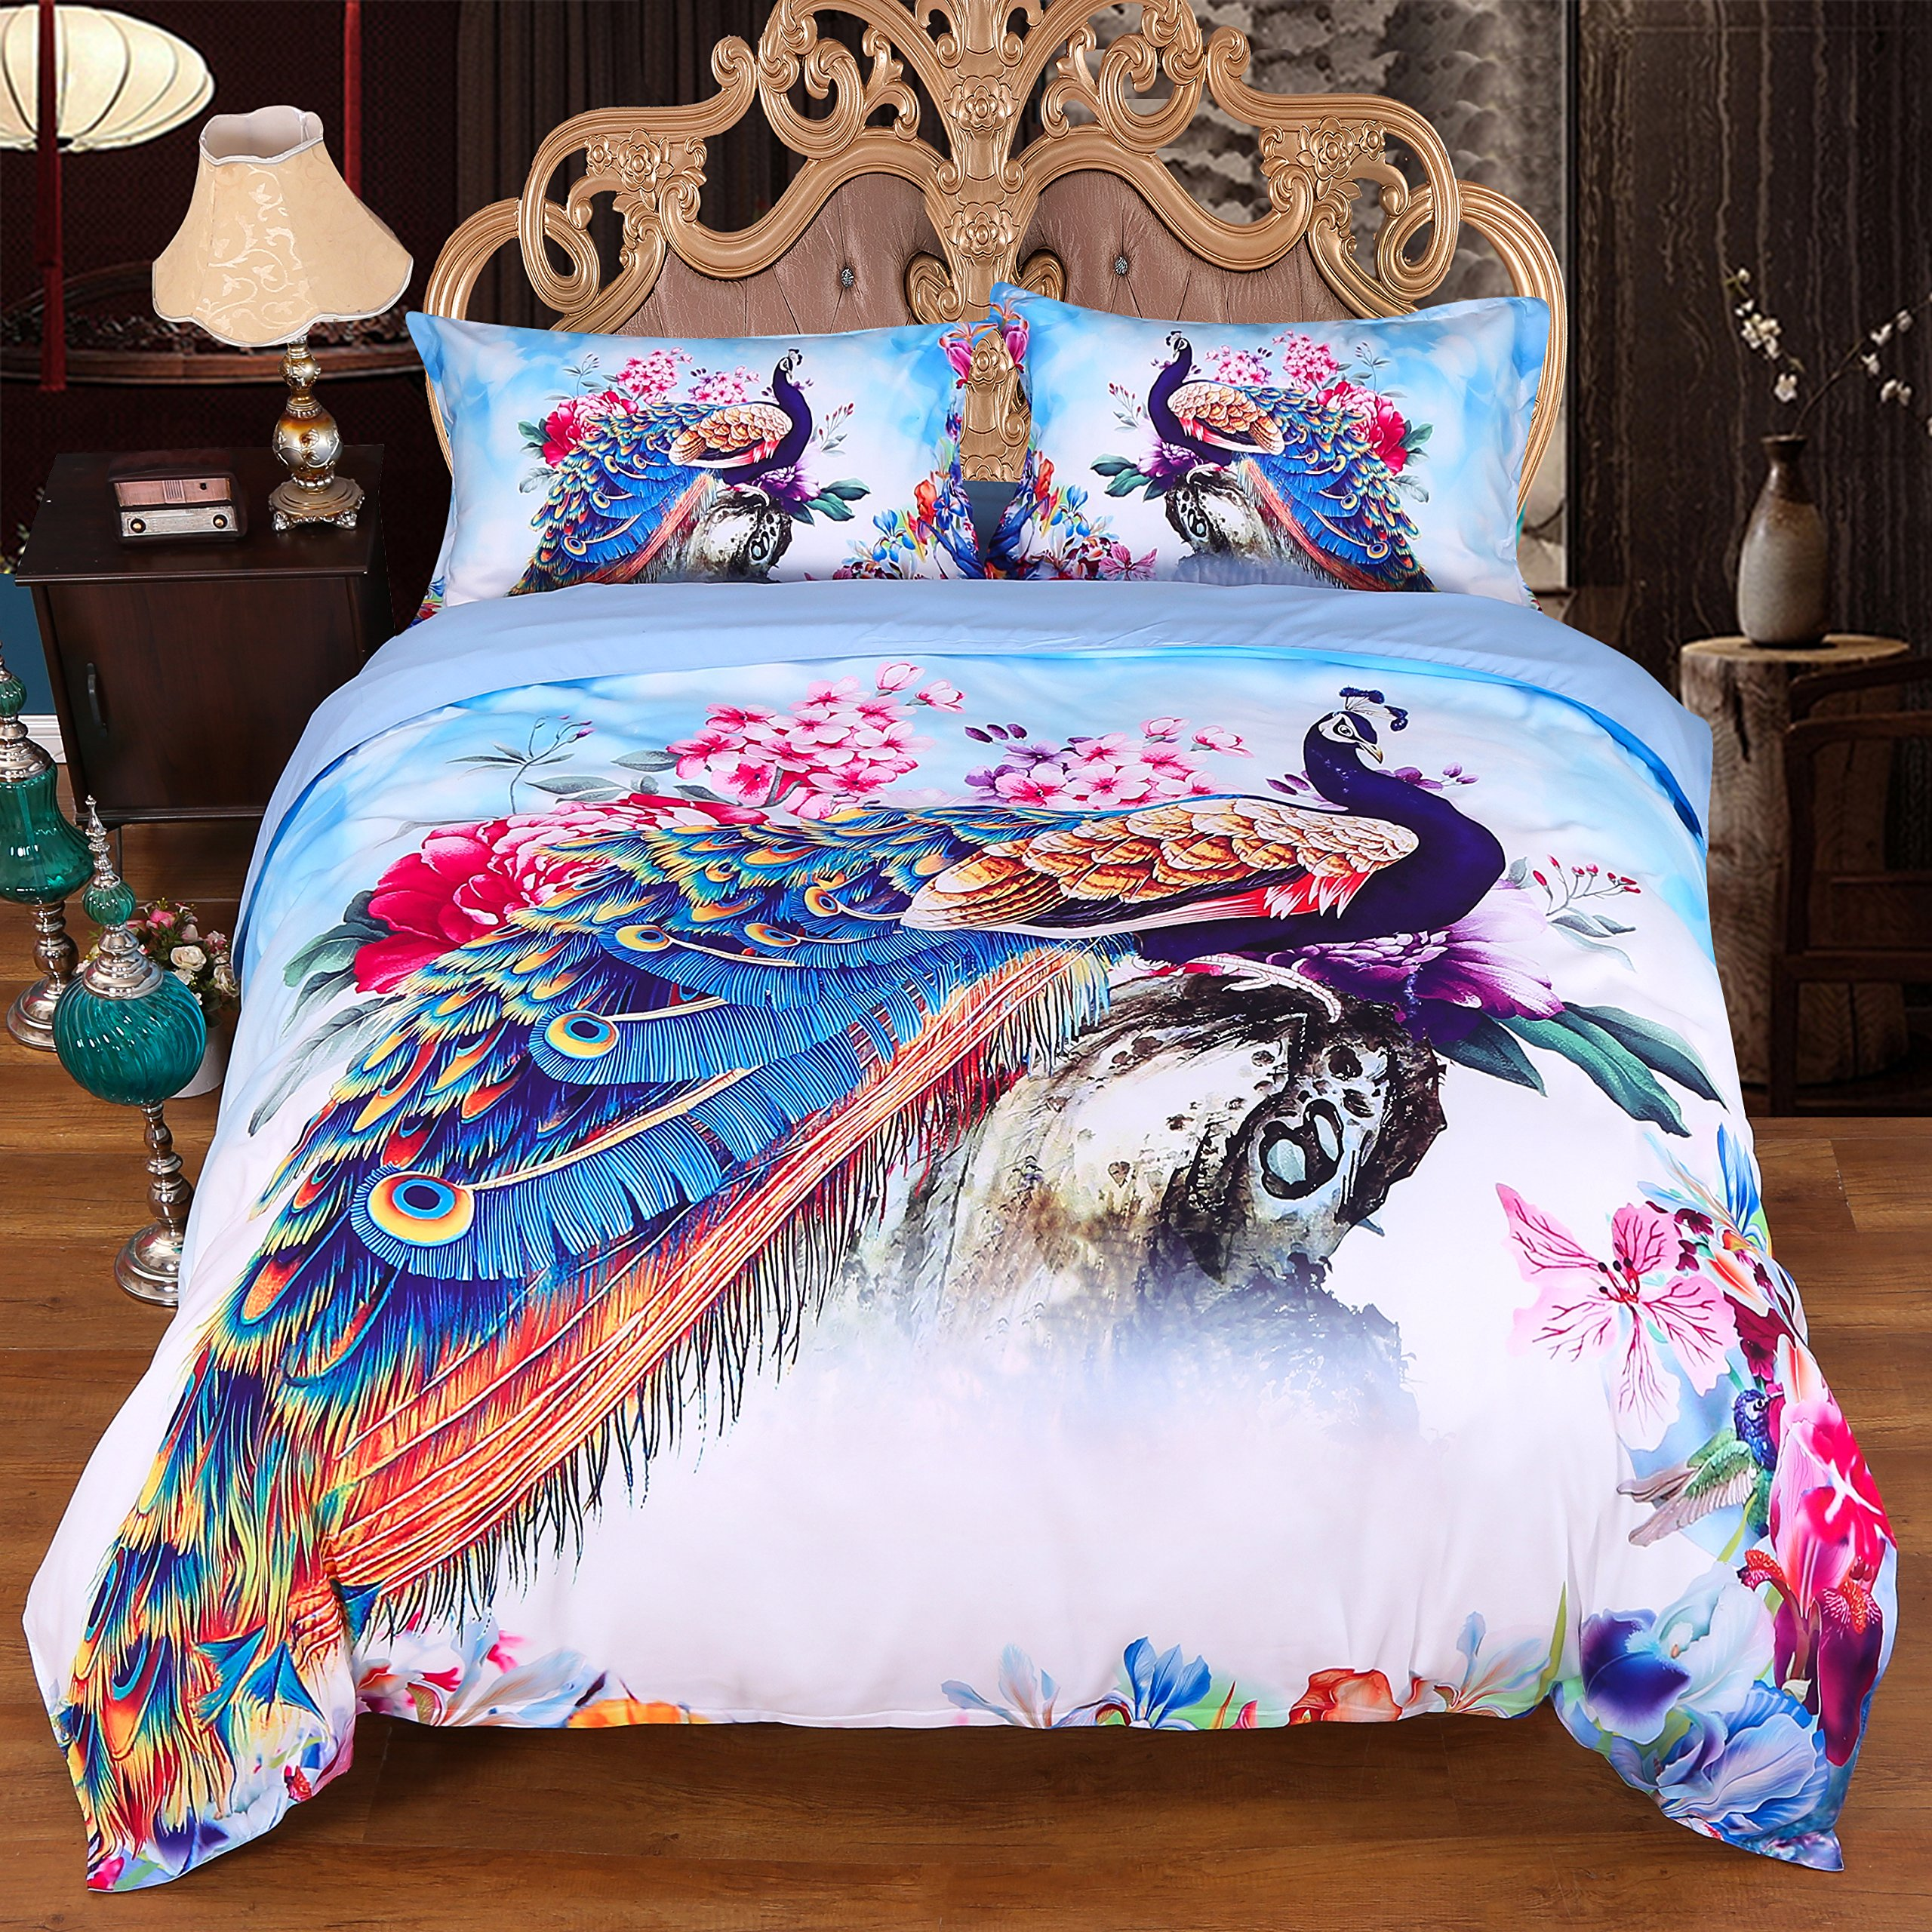 Encoft 3D Peacock Bedding Luxury Beautiful Peacock and Peony Watercolor Printed 4-Piece Duvet Cover Set, Full Size Peacock Sheets Set, No Comforters (Full, Multi)